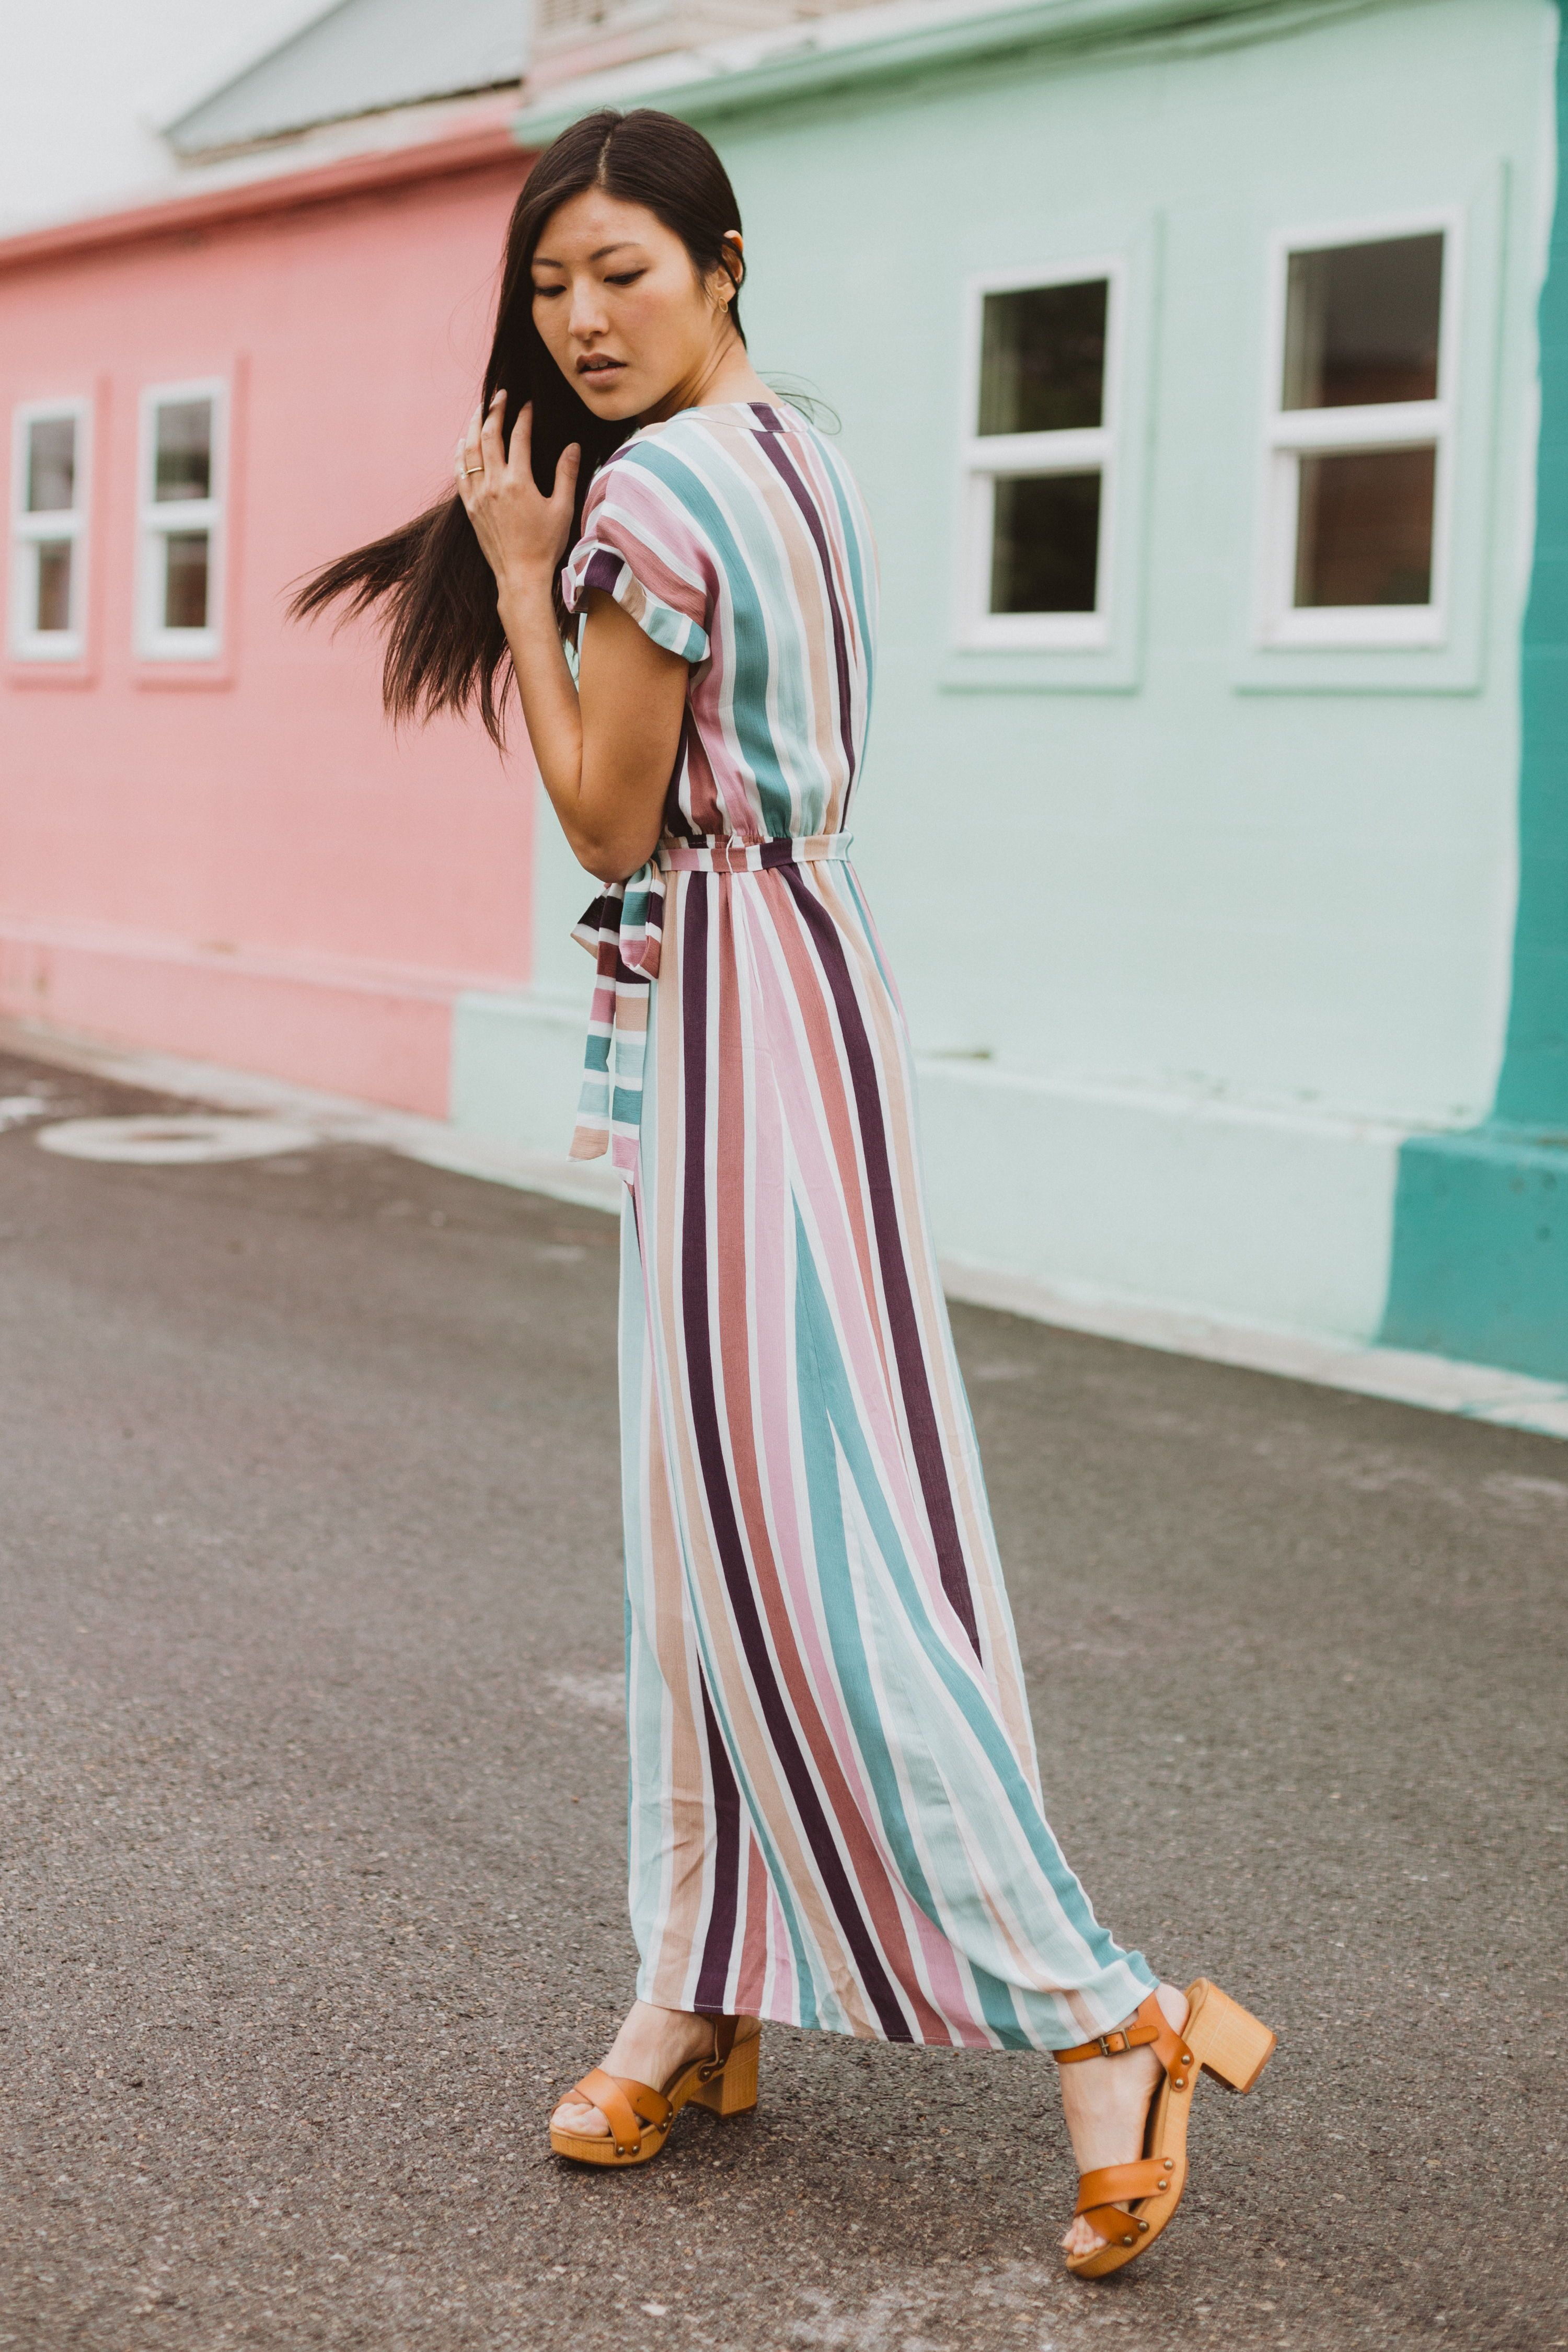 The Cha Cha Striped Maxi Dress Is As If All Your Favorite Things Came Together As A Dress It Is Nursing Fri Pretty Dresses For Teens Pretty Dresses Maxi Dress [ 4500 x 3000 Pixel ]